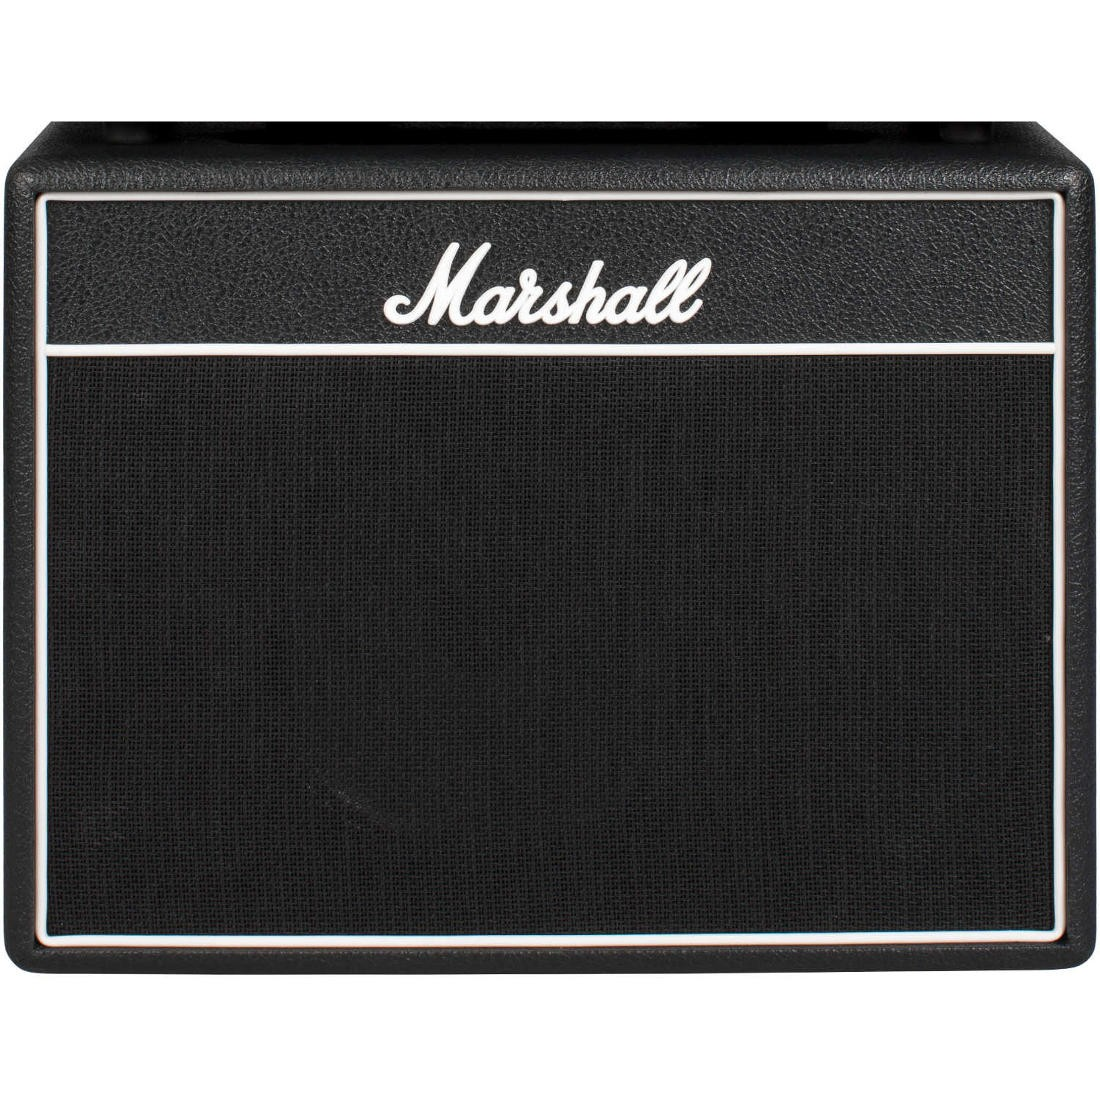 Marshall Class 5 Roulette -Limited Edition - Valve Combo